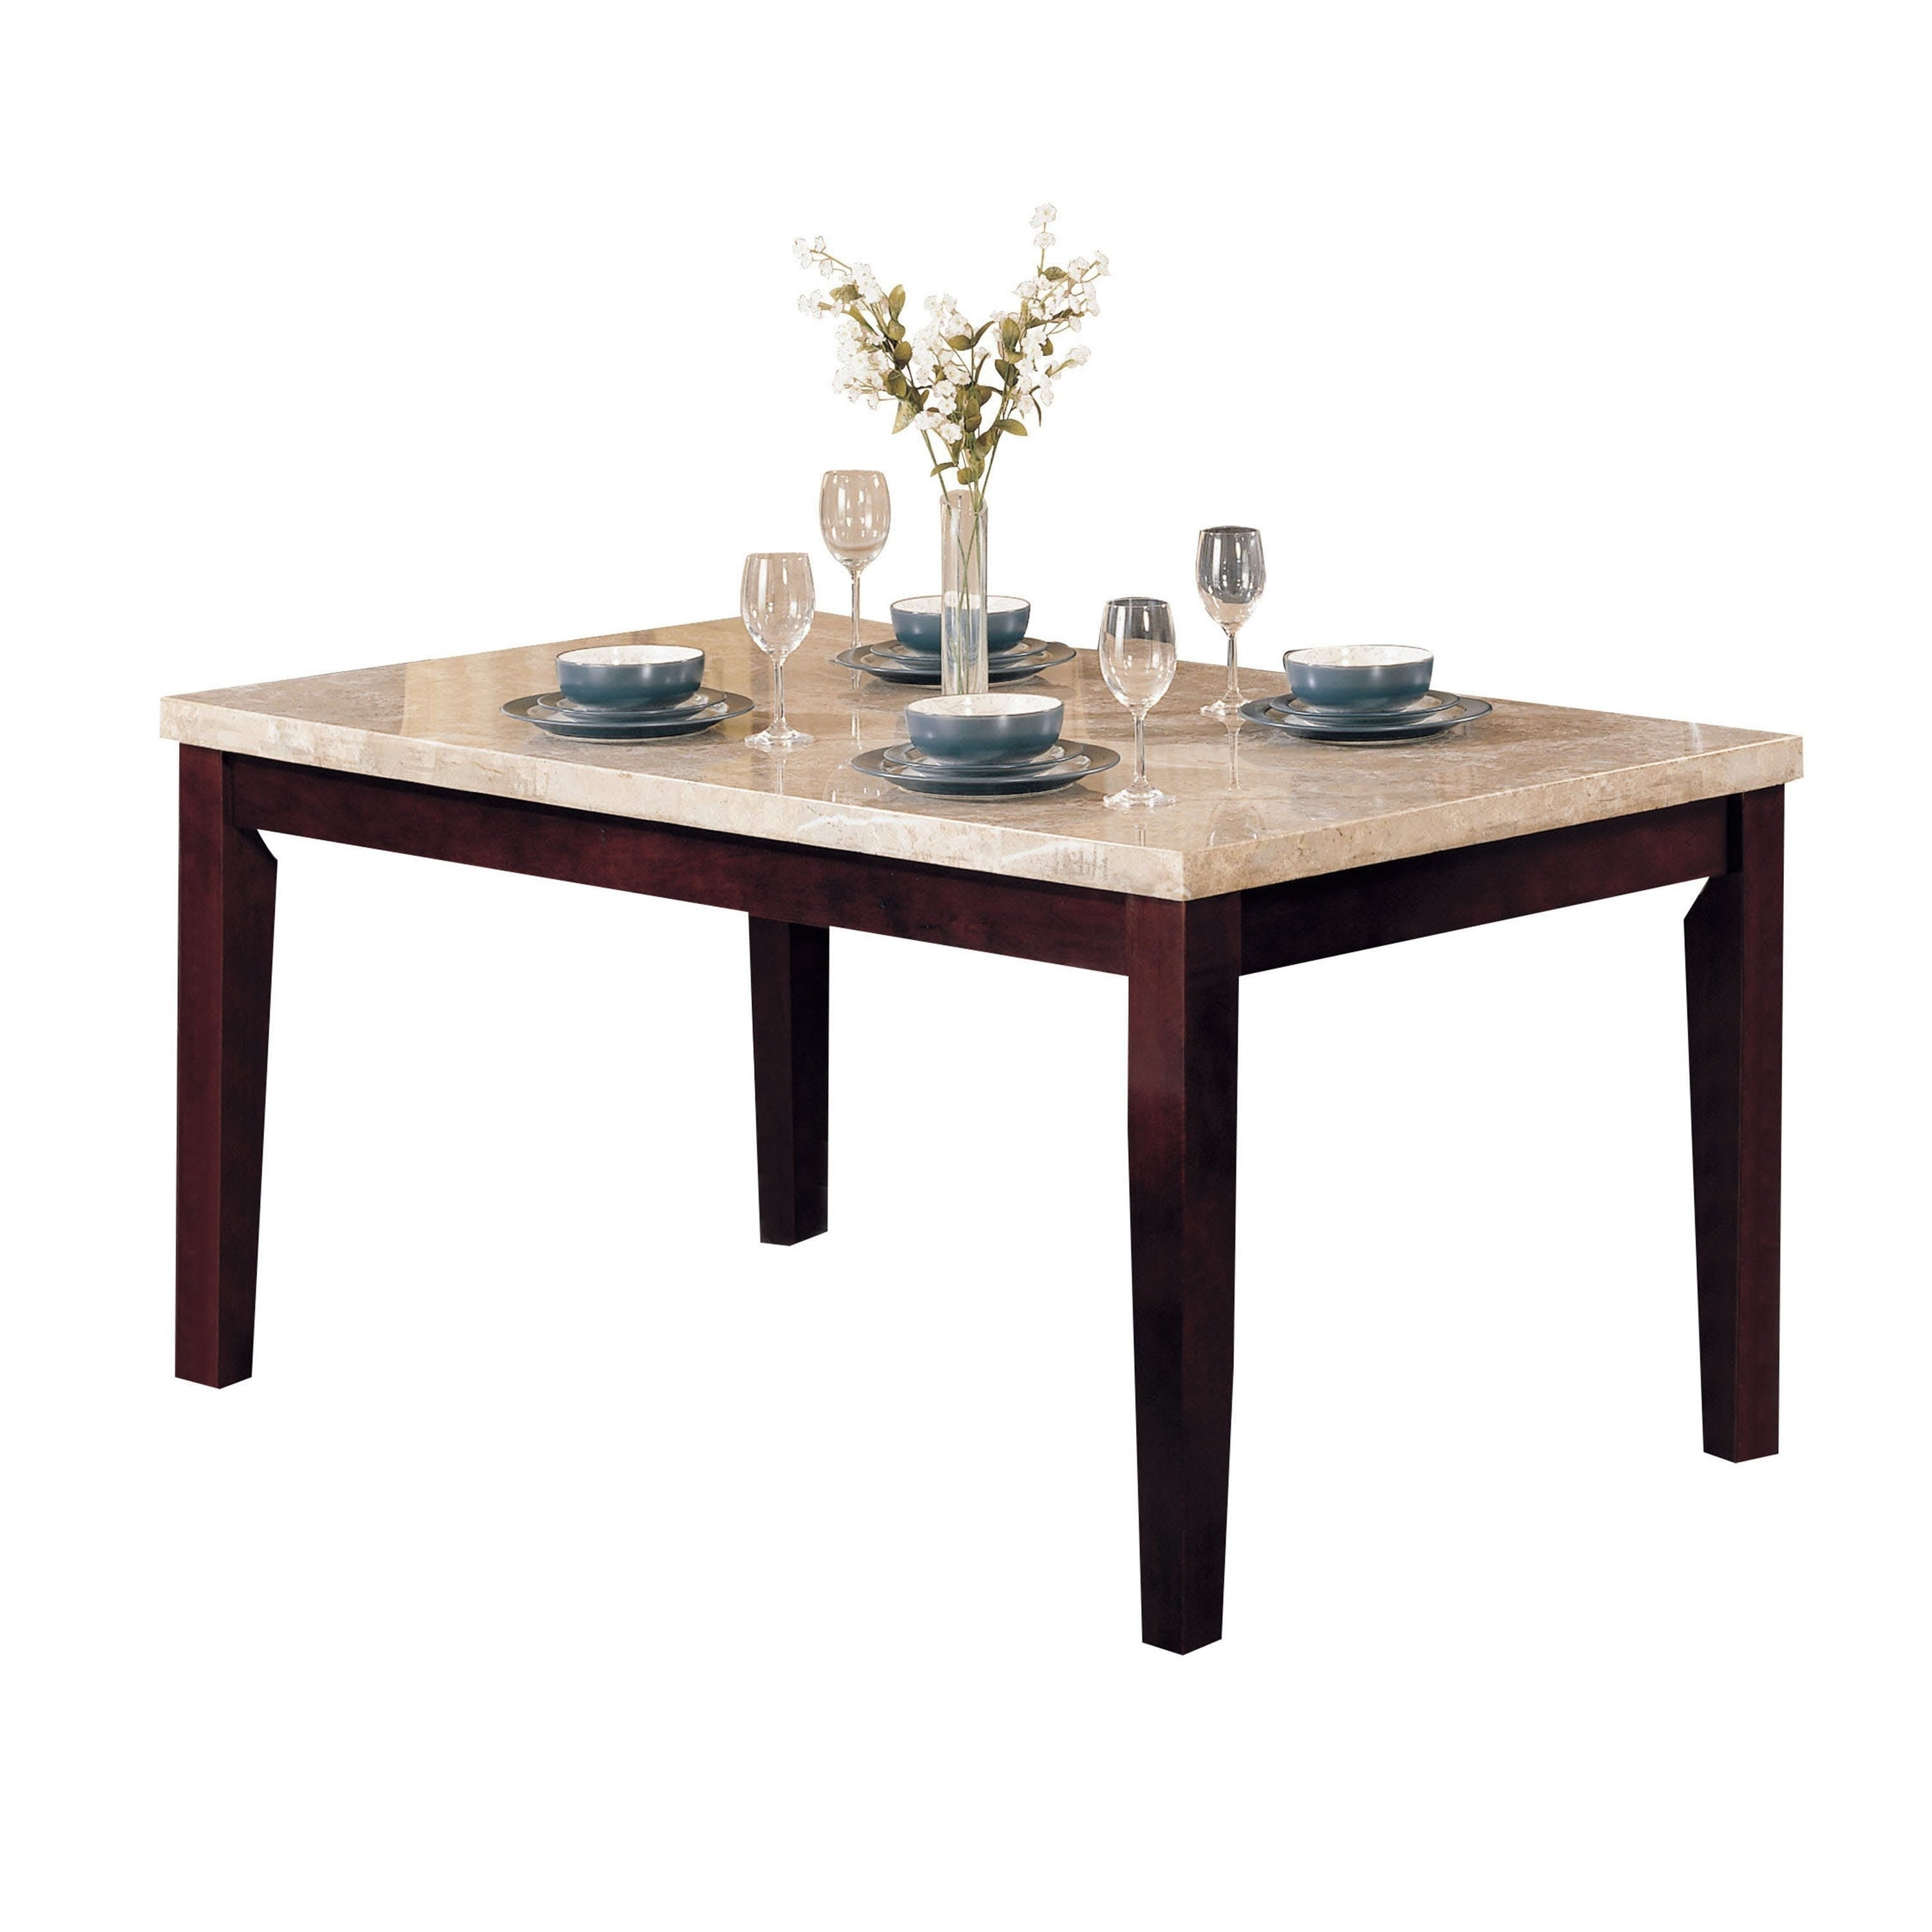 Rectangular Wooden Dining Table With Beige Marble Top Walnut Brown Overstock 22882197